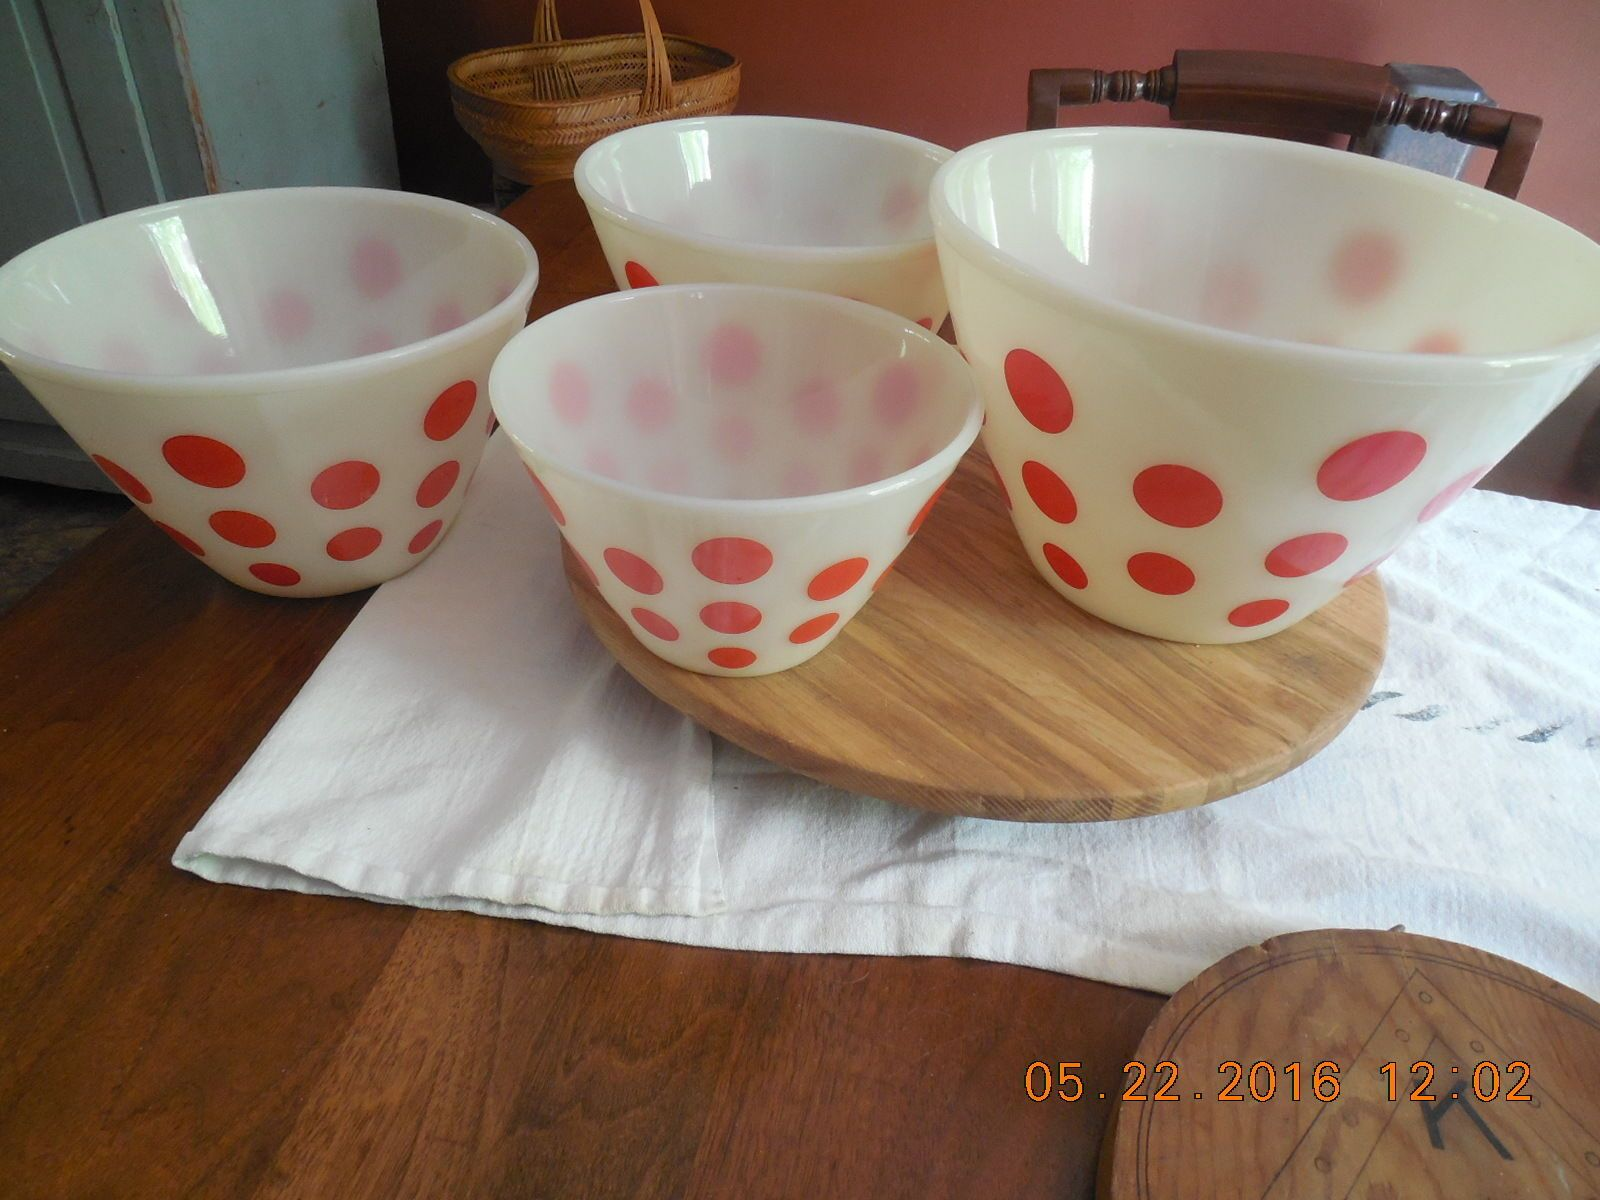 Vtg Matching Set of 4 Fire King Red Dots Splash Proof Oven Ware Mixing Bowls…